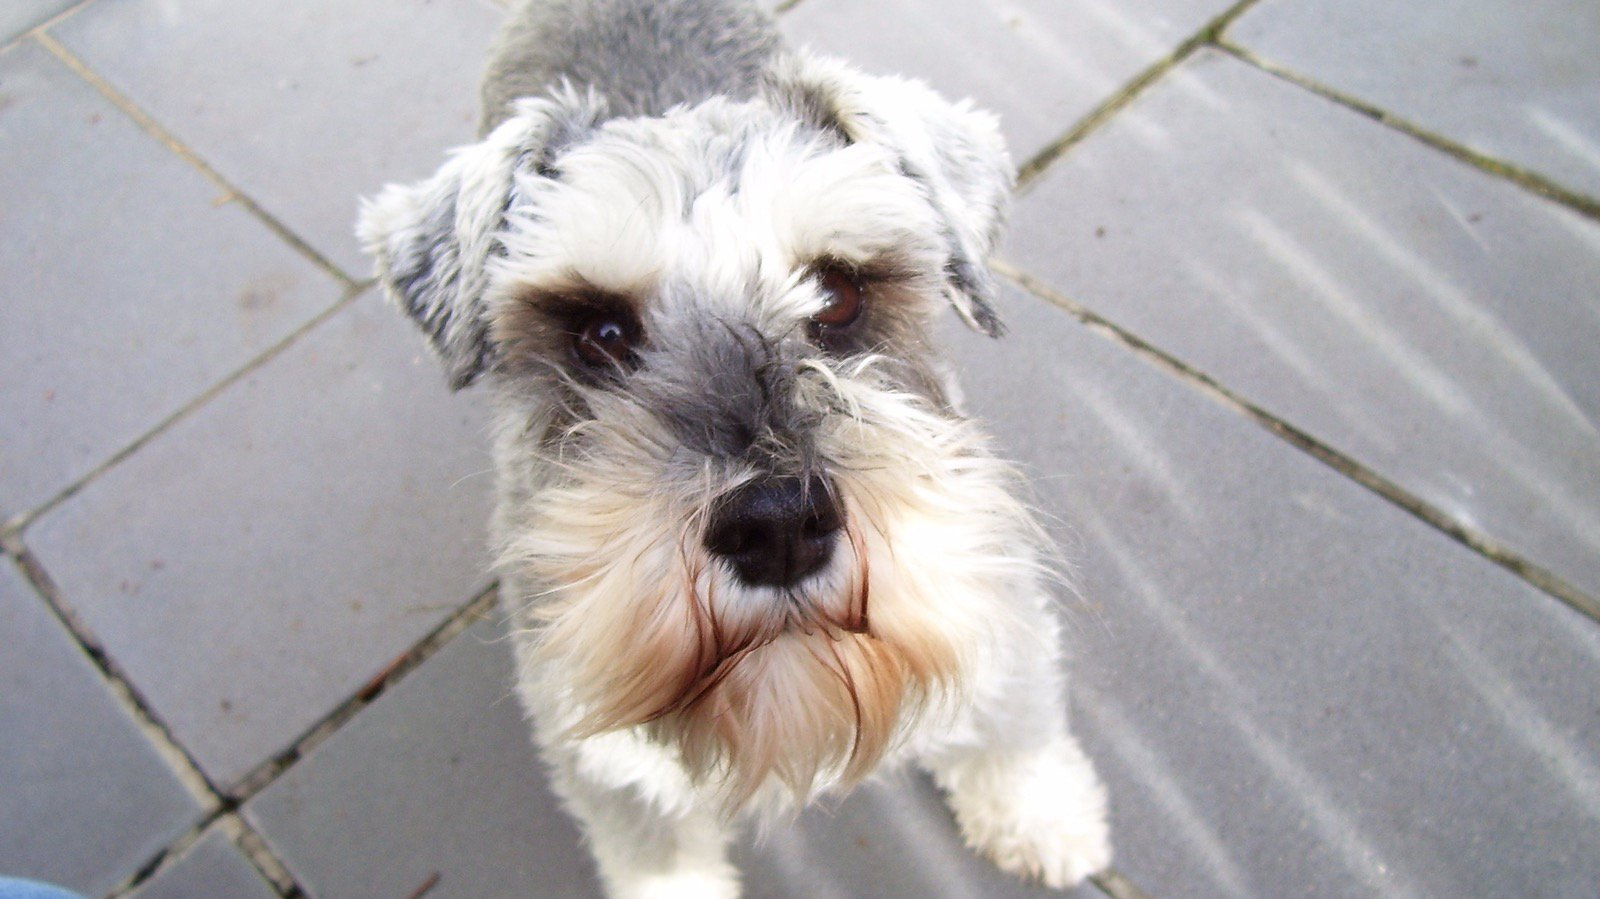 Pet Friendly accommodation, dog walking and minding can be arranged